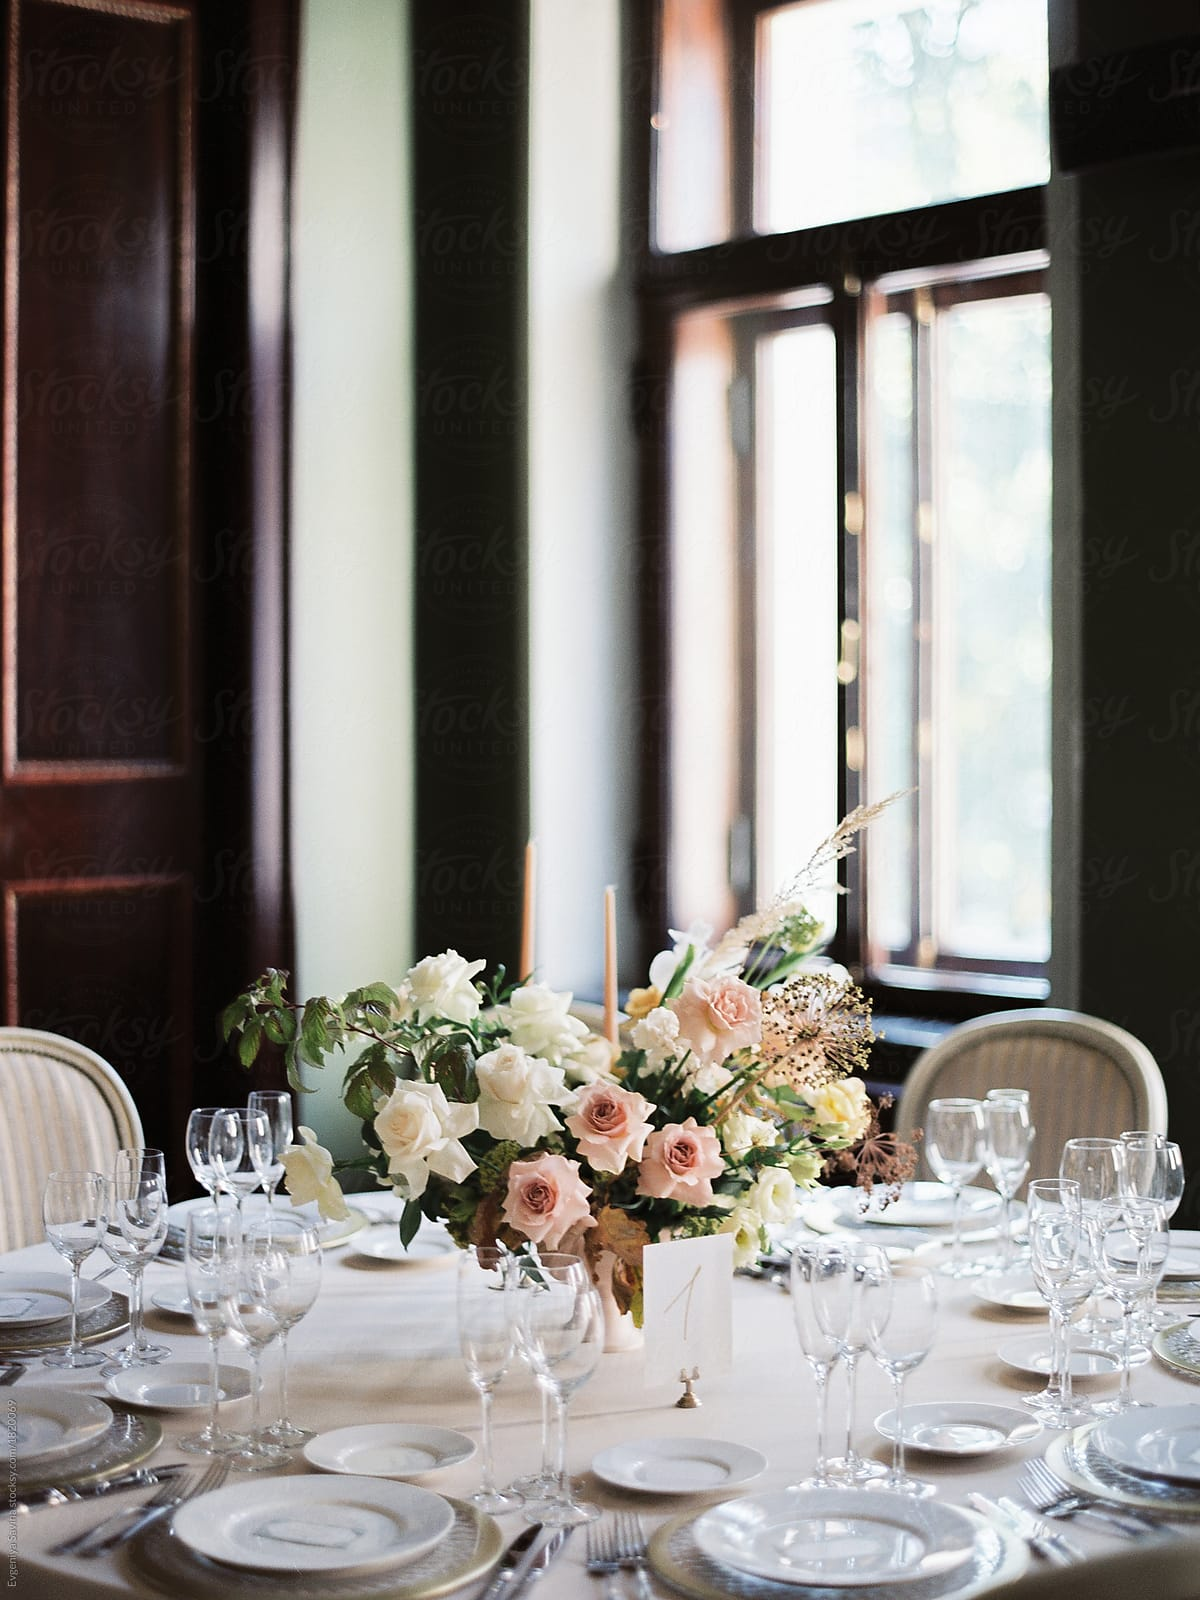 A beautiful wedding table setting with a floral composition with ...